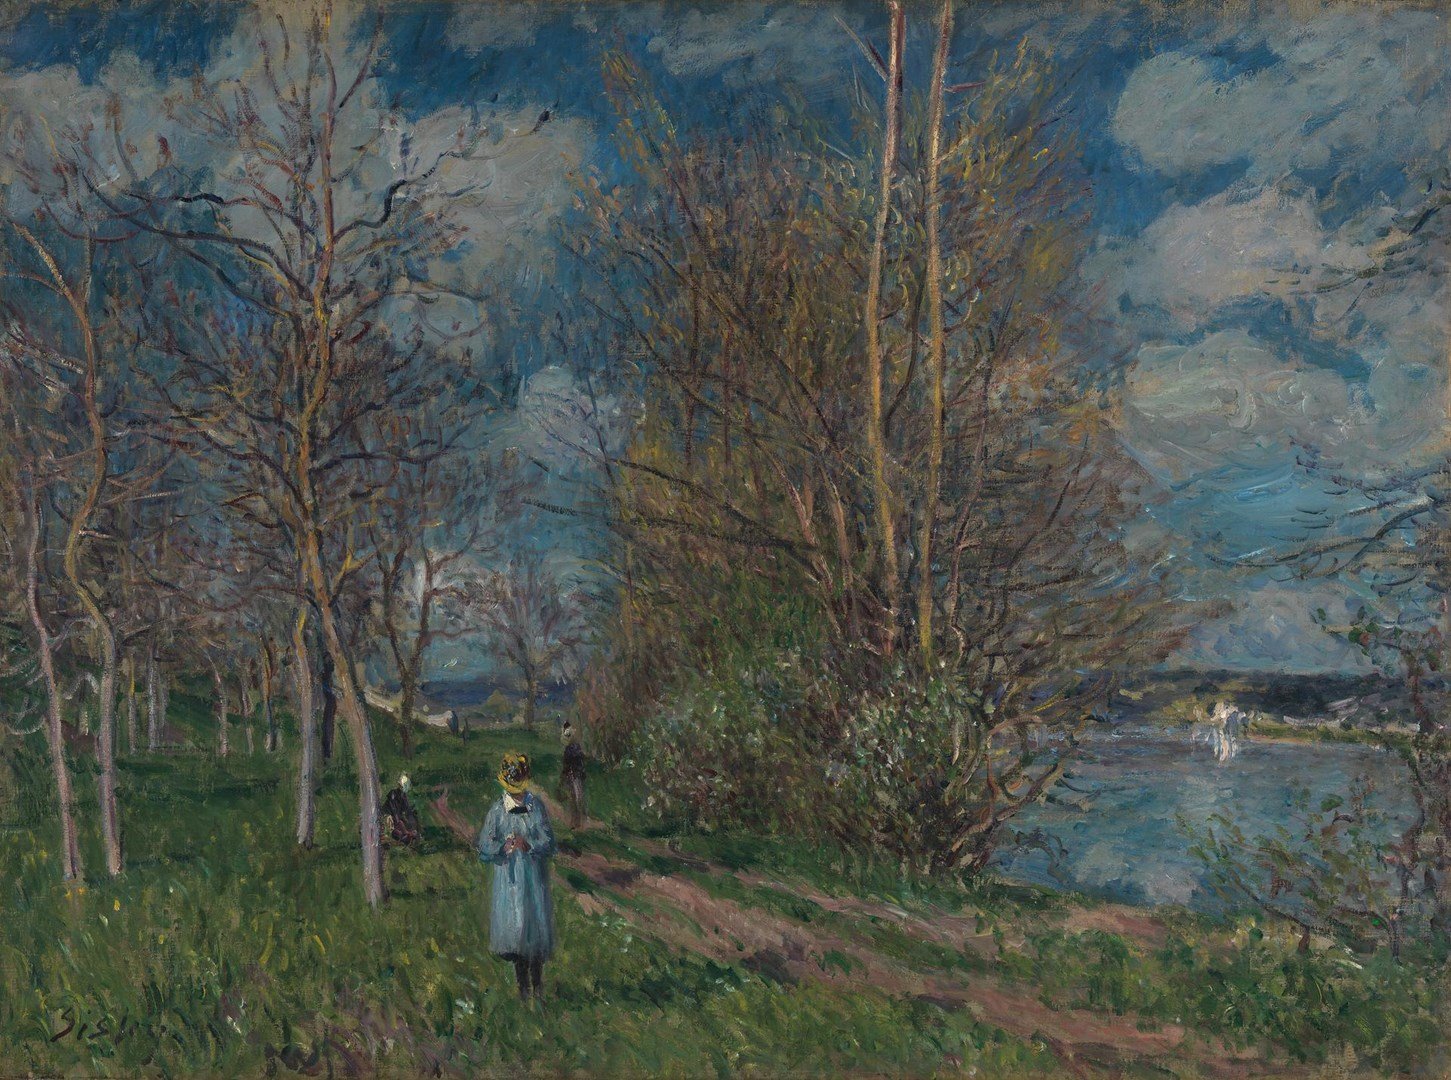 The Small Meadows in Spring by Alfred Sisley